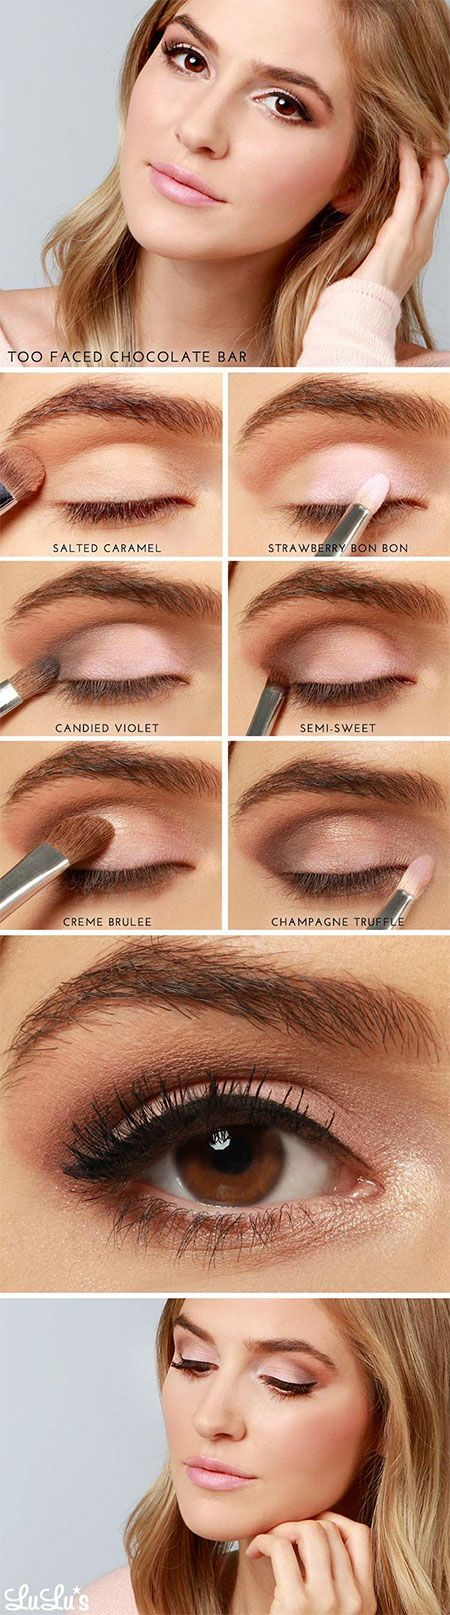 Makeup is the best way to hide the flaws of the face, the blemishes, wrinkles, scars and acne can easily be hidden behind the layer of makeups. No matter how bi